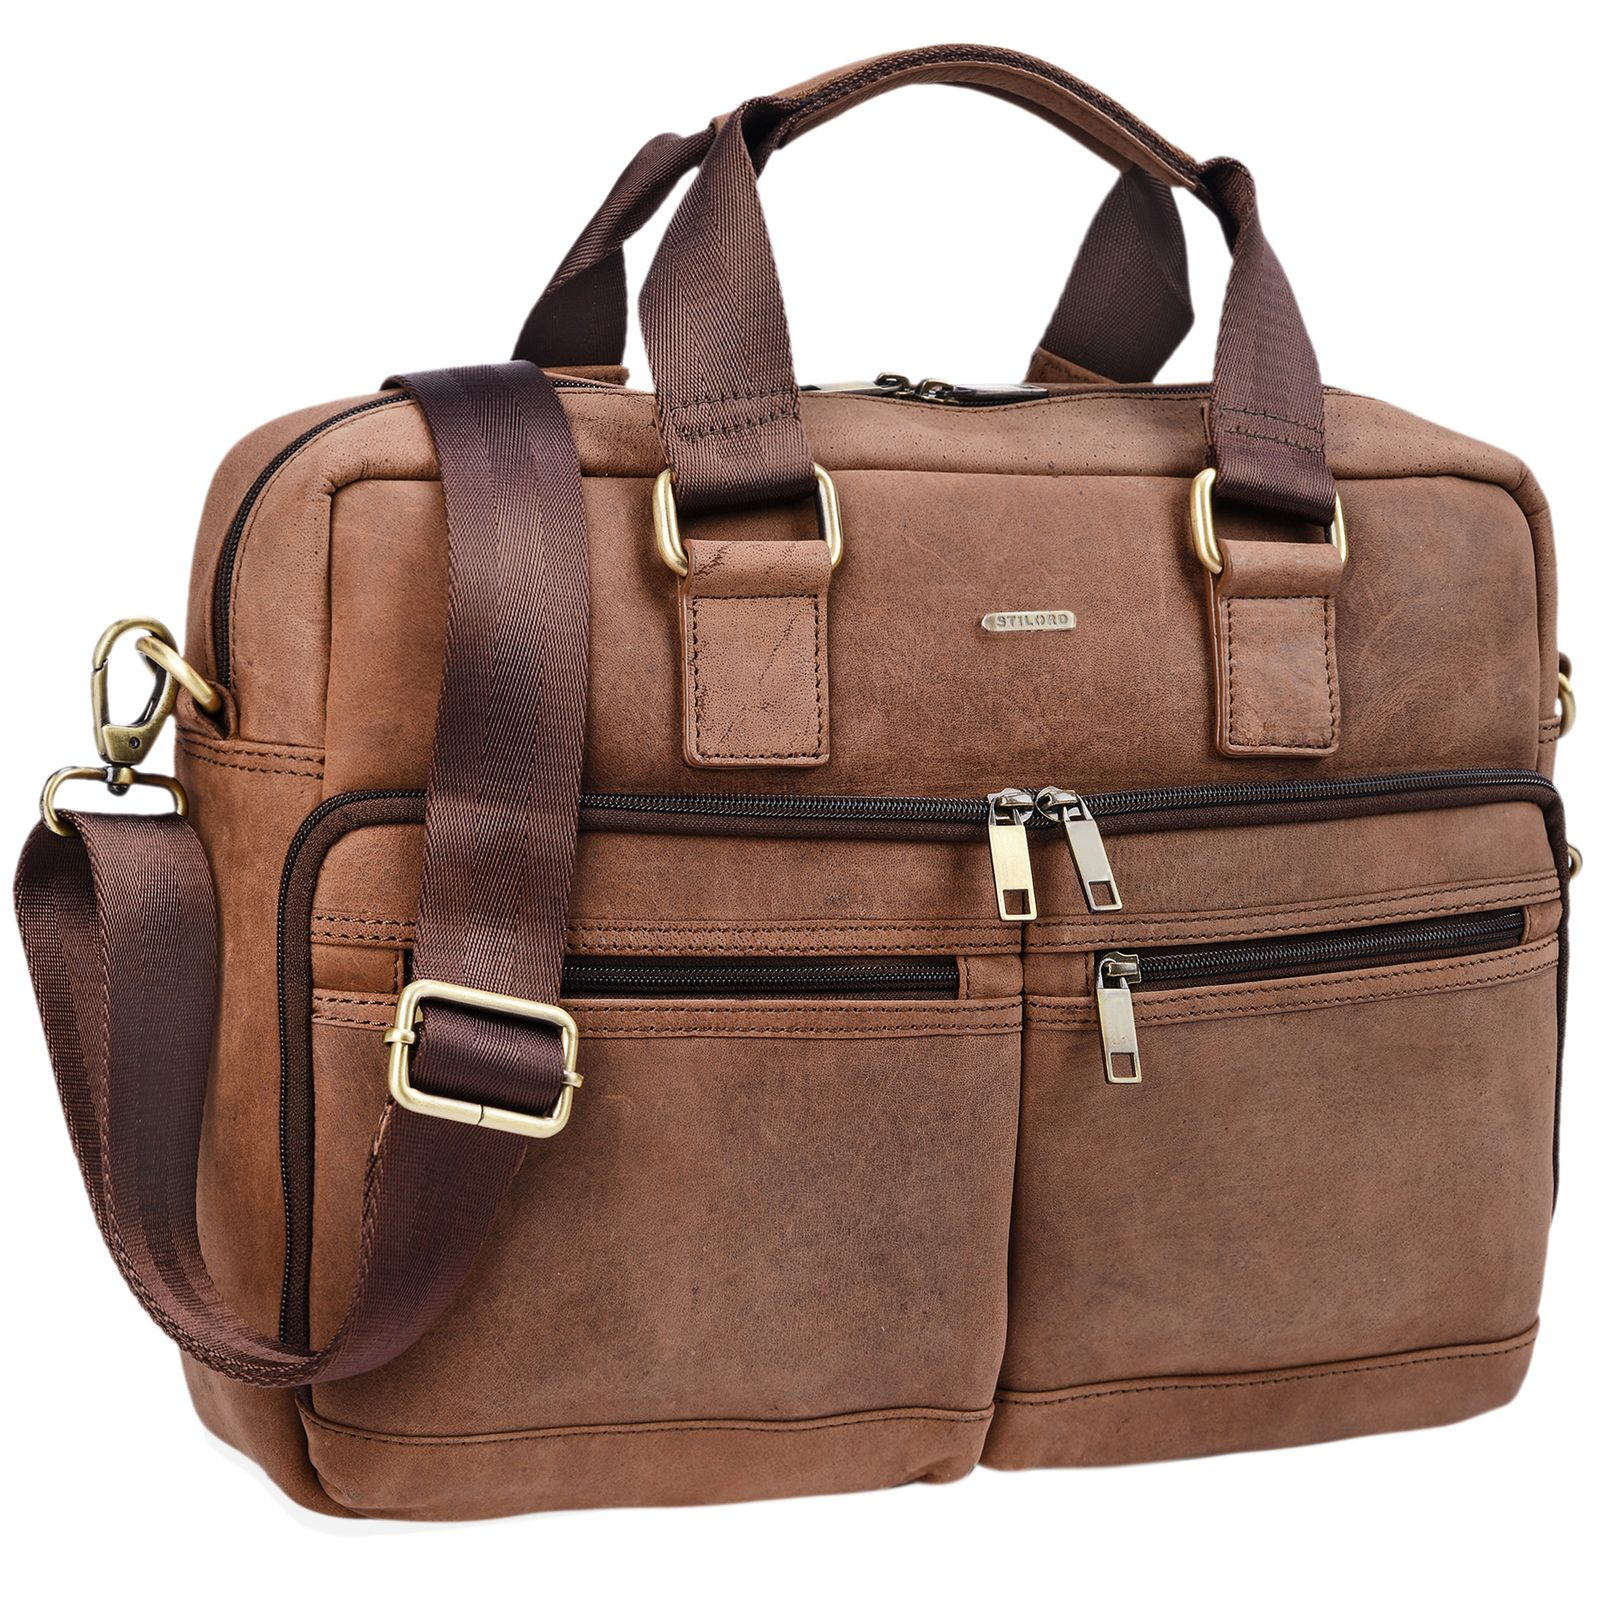 Business Ledertasche braun Retro